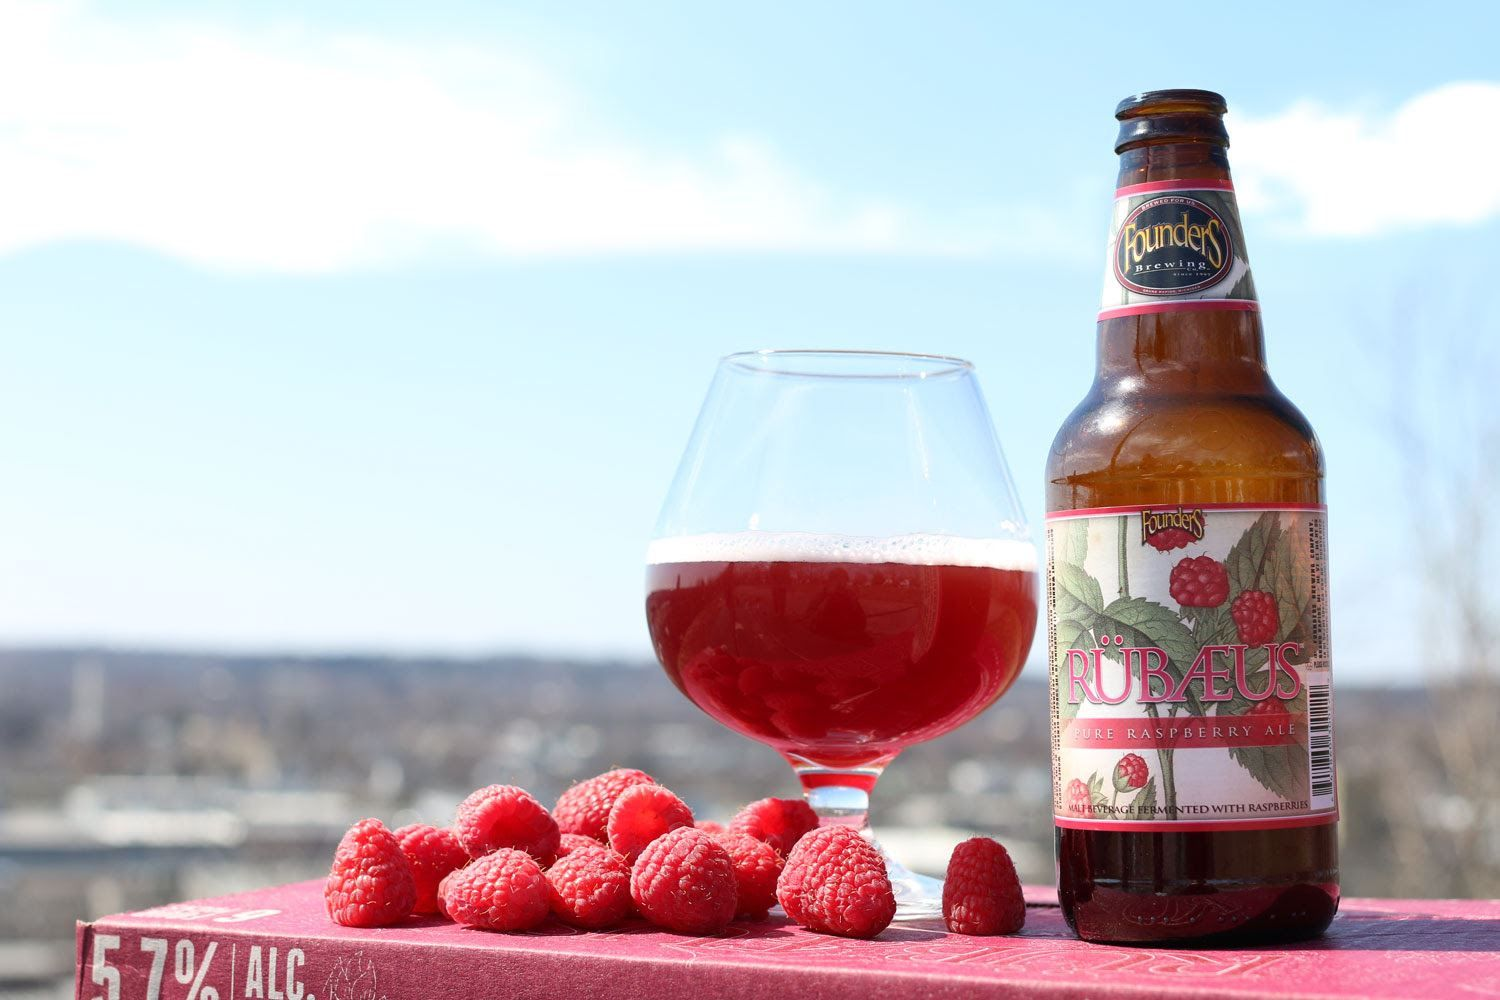 Founders Brewing In Grand Rapids Mi Uses 3 185 Pounds Of Raspberries In Each Batch Of Rubaeus Beer Wine And Spirits Wines Beer